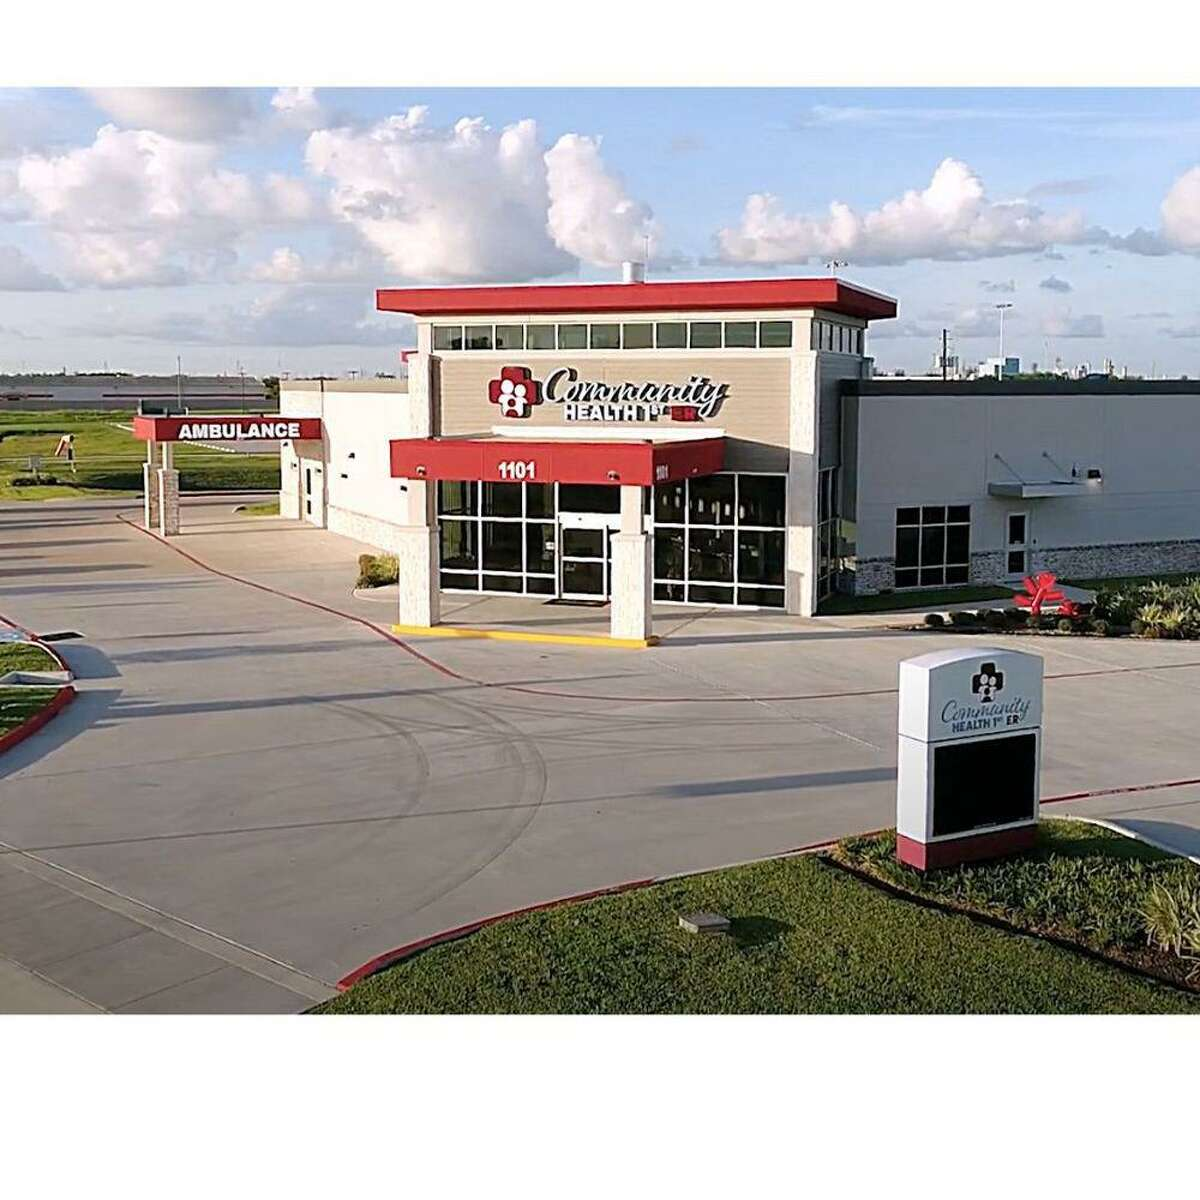 Community First ER, which has locations including this one in Deer Park, is scheduled to open a Pearland site in mid-April.